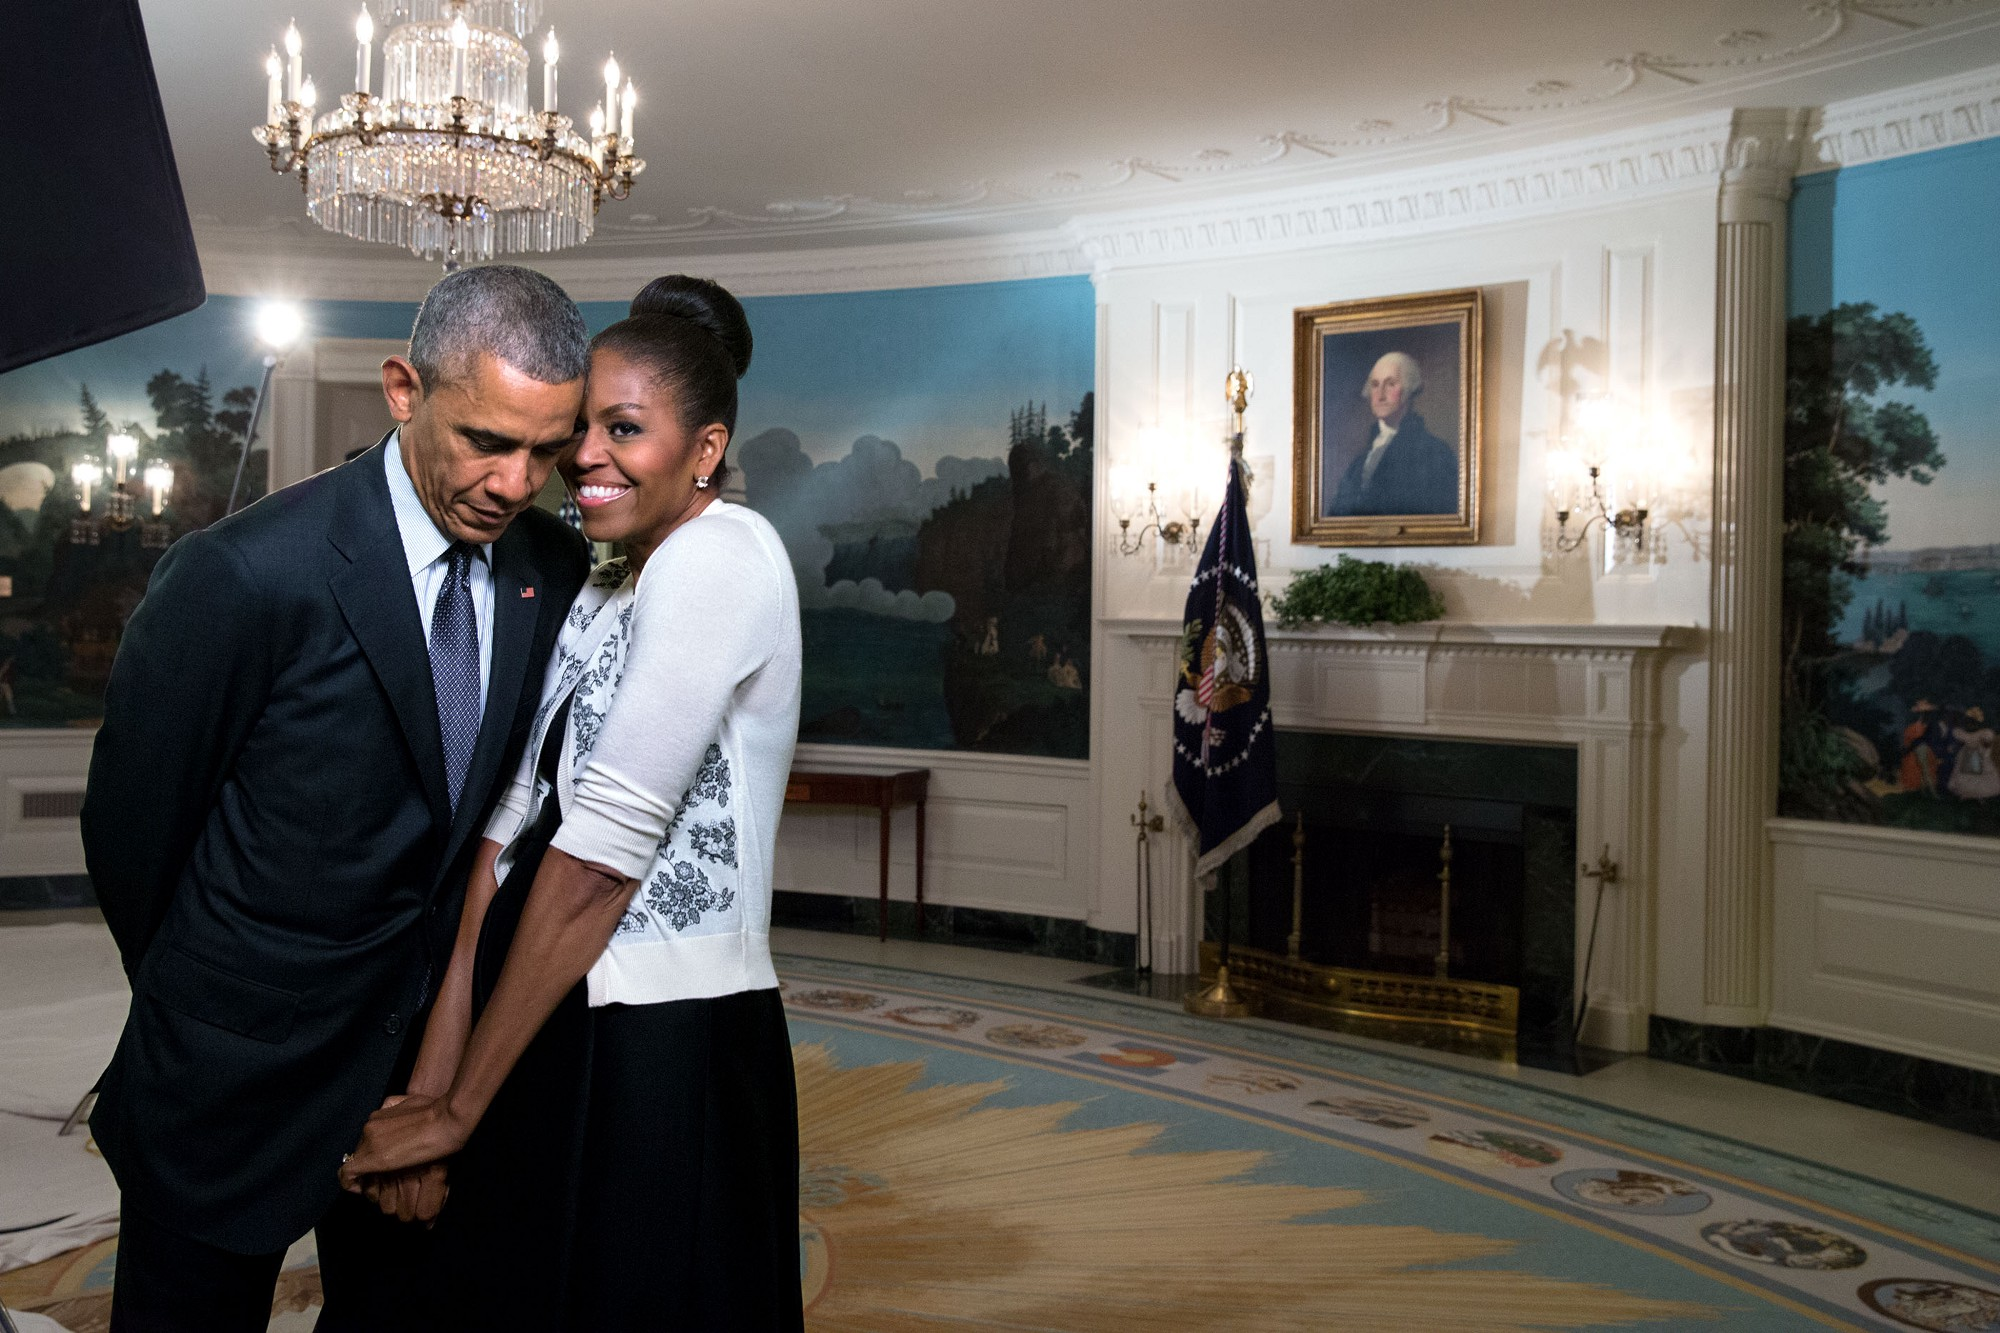 "March 27, 2015 ""The First Lady snuggled against the President during a video taping for the 2015 World Expo in the Diplomatic Reception Room of the White House."" (Official White House Photo by Amanda Lucidon)"